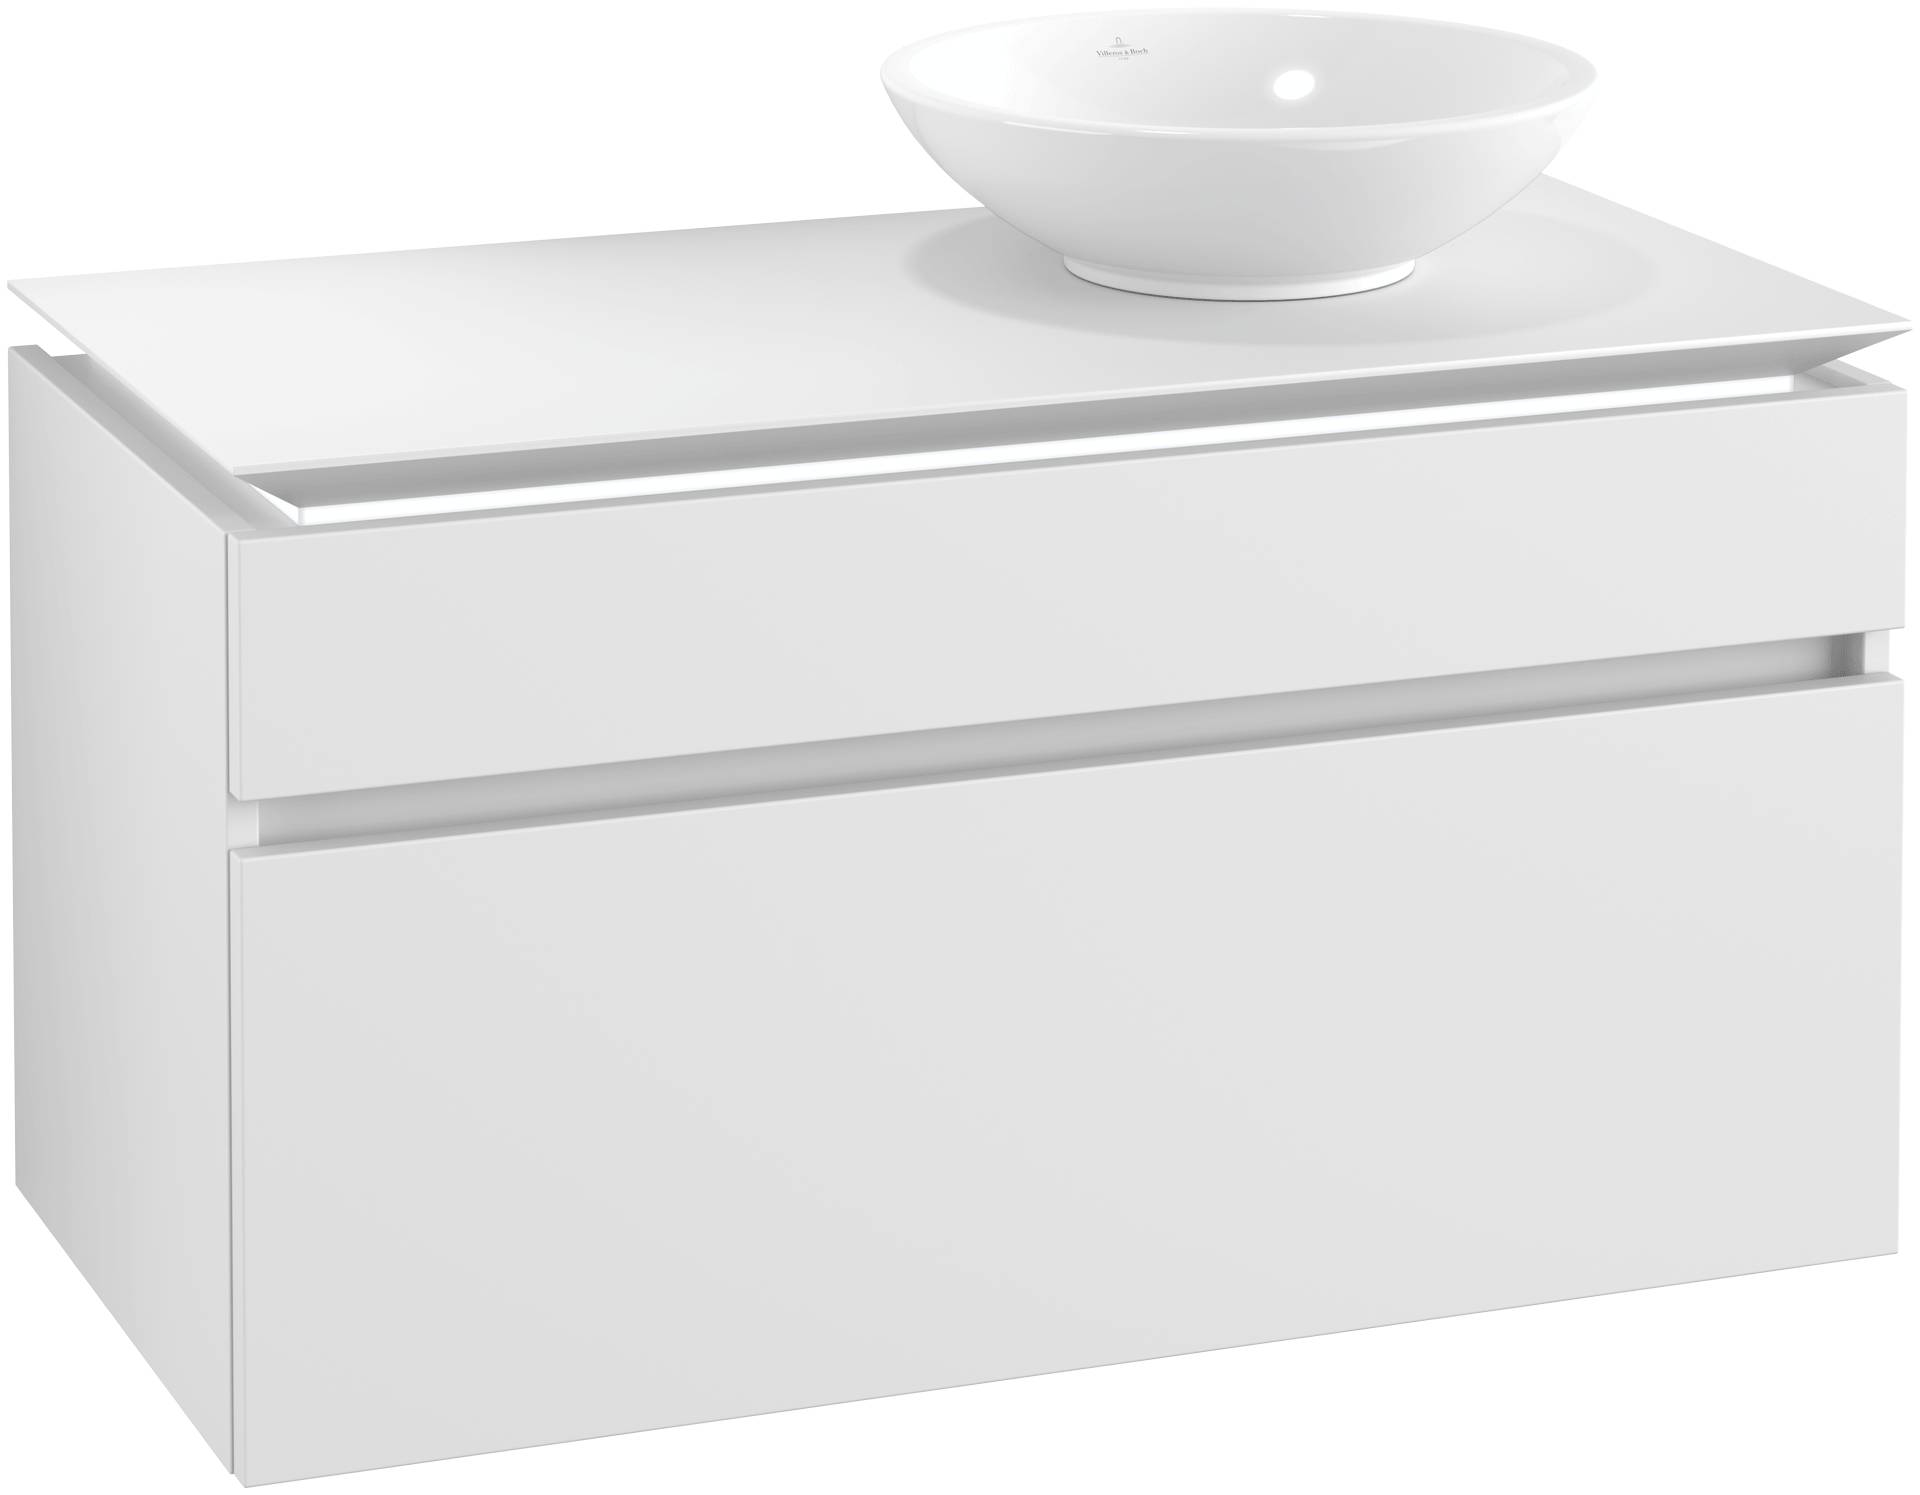 Villeroy & Boch Villeroy & Boch Legato - Meuble sous lavabo with 2 drawers & 1 cut-out right 1000 x 550 x 500mm blanc mat